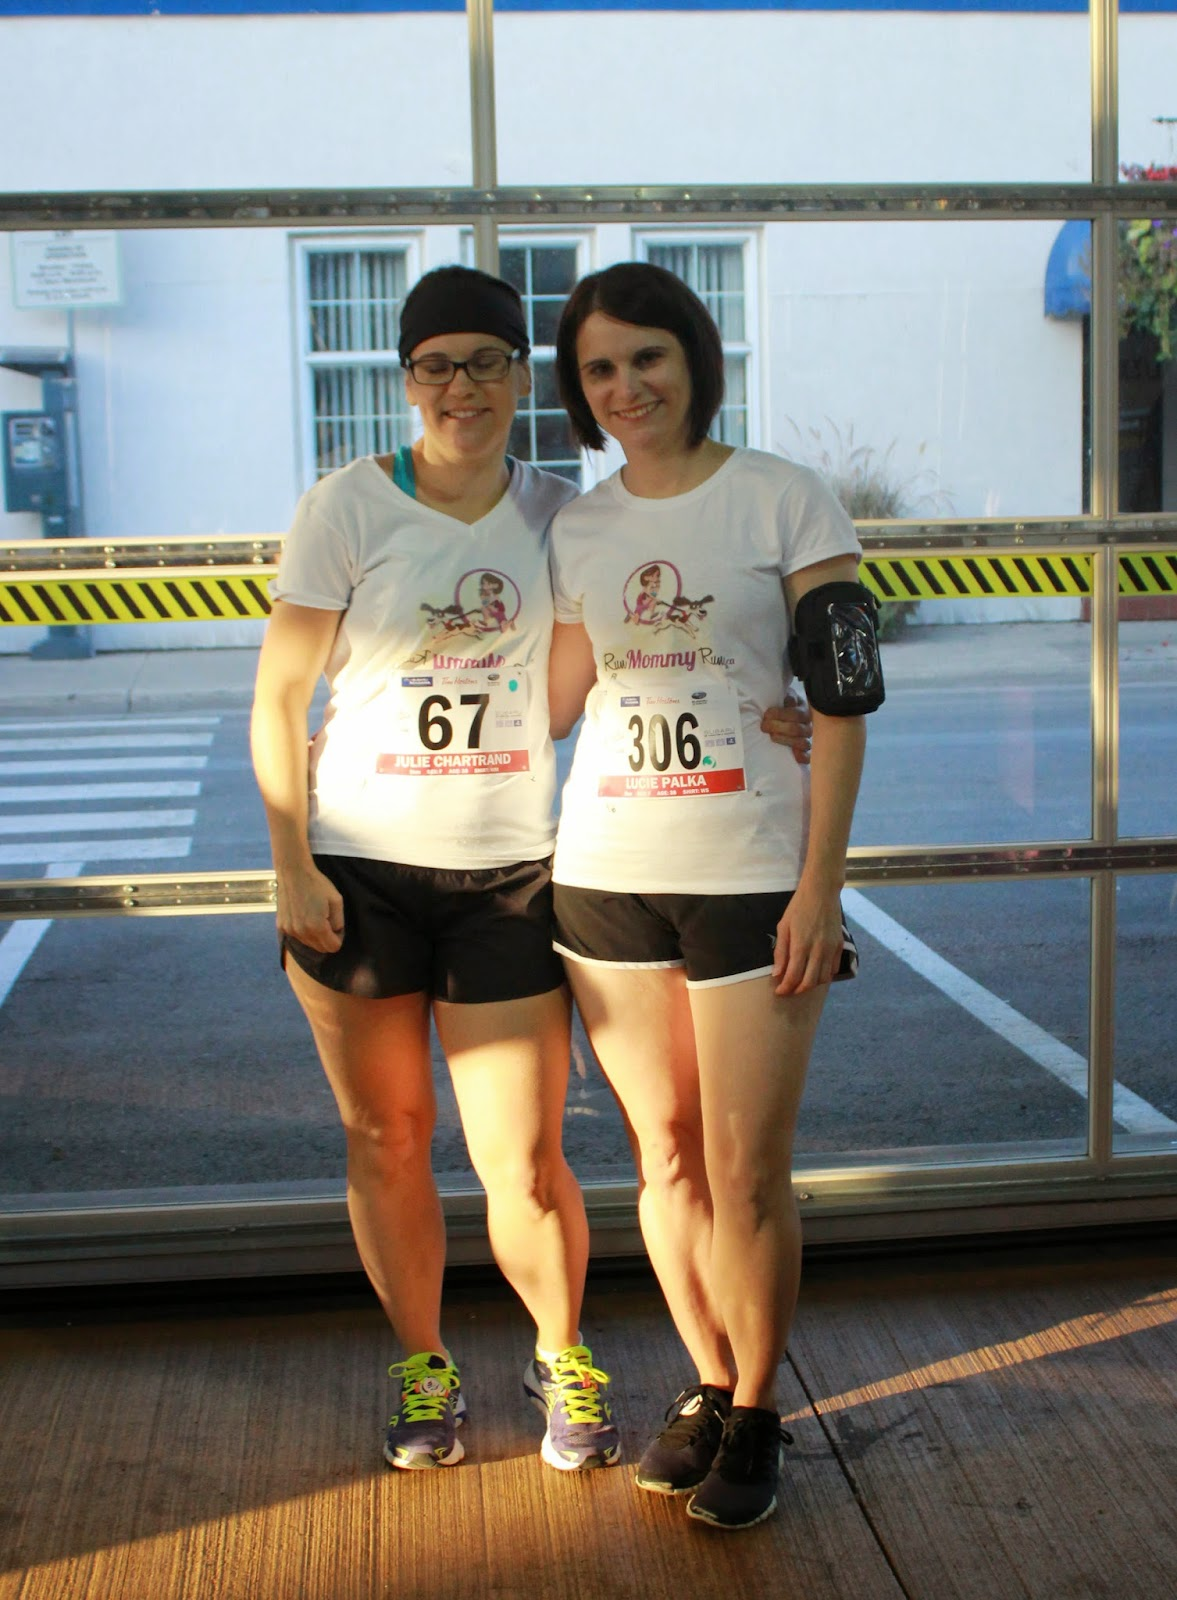 A photo of the twins before the race